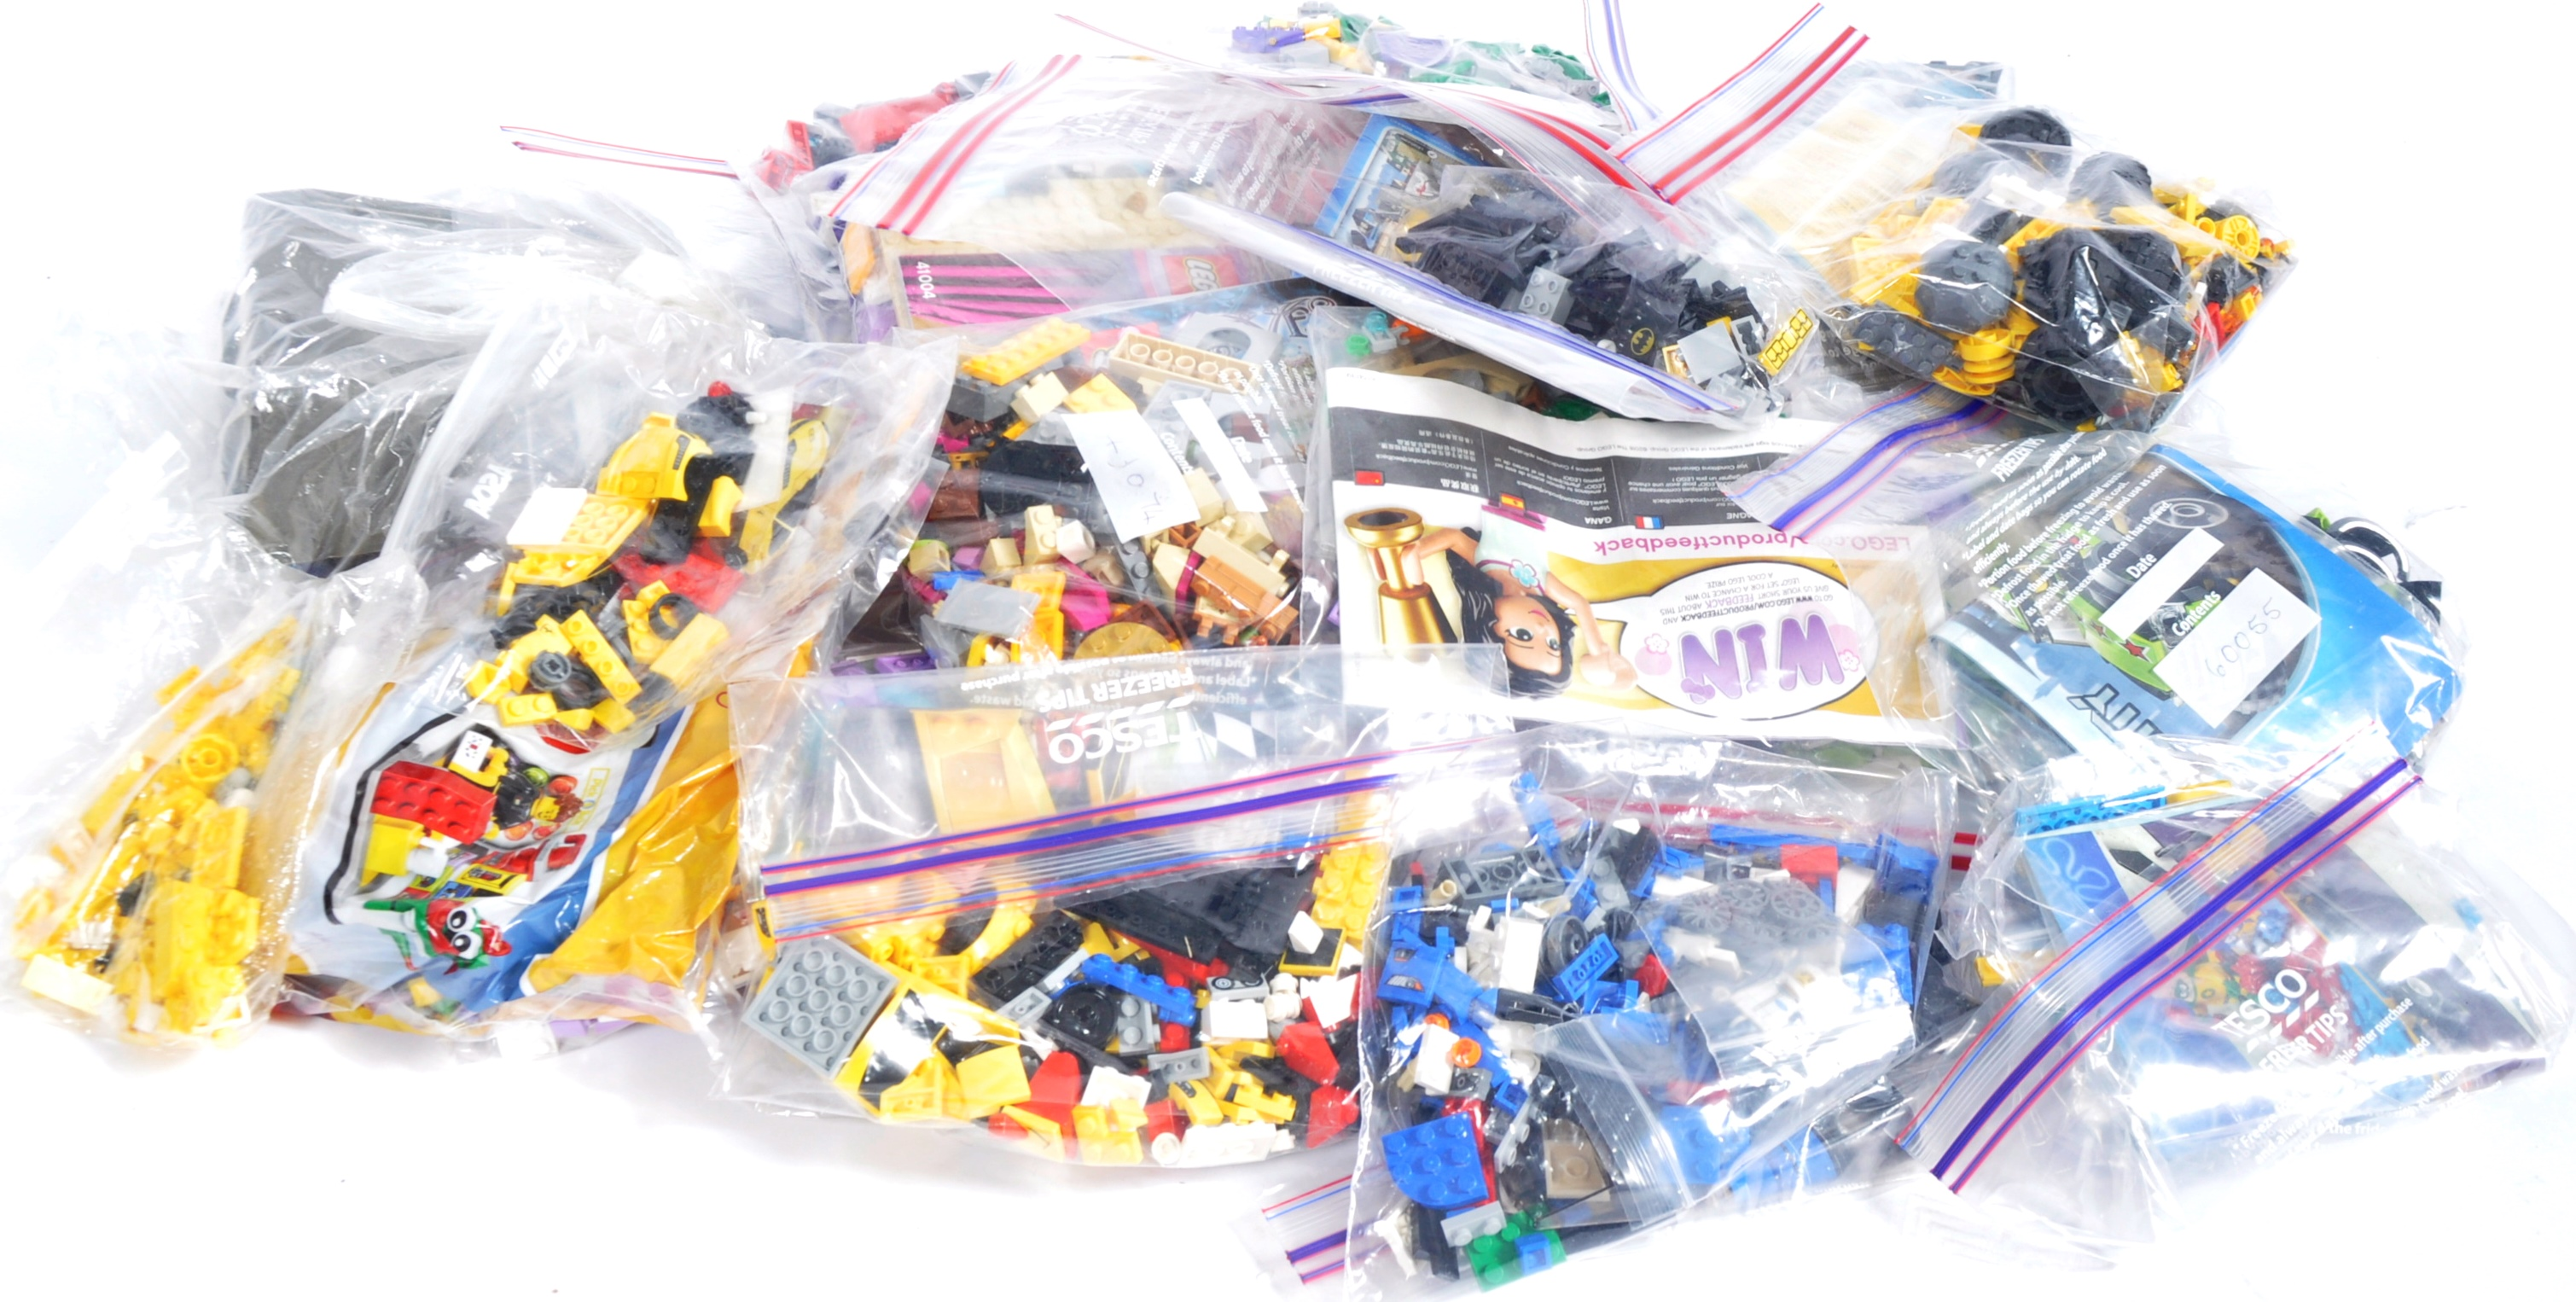 LARGE COLLECTION OF ASSORTED UNBOXED LEGO SETS - Image 2 of 5